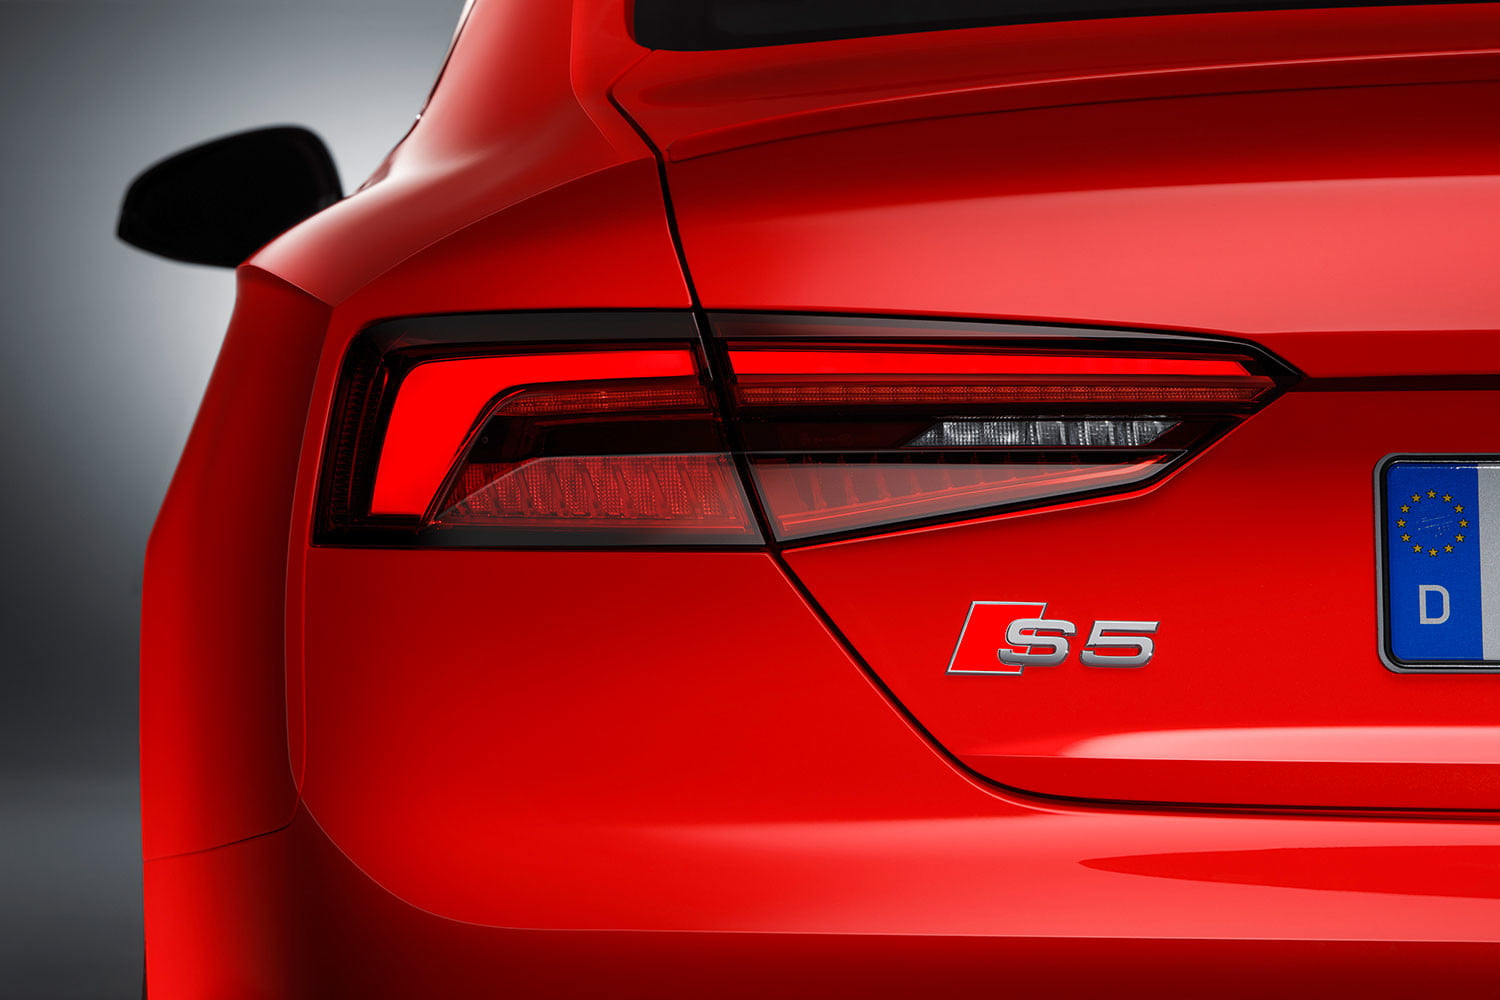 2017 audi a5 news pictures specs performance s5 coupe 005